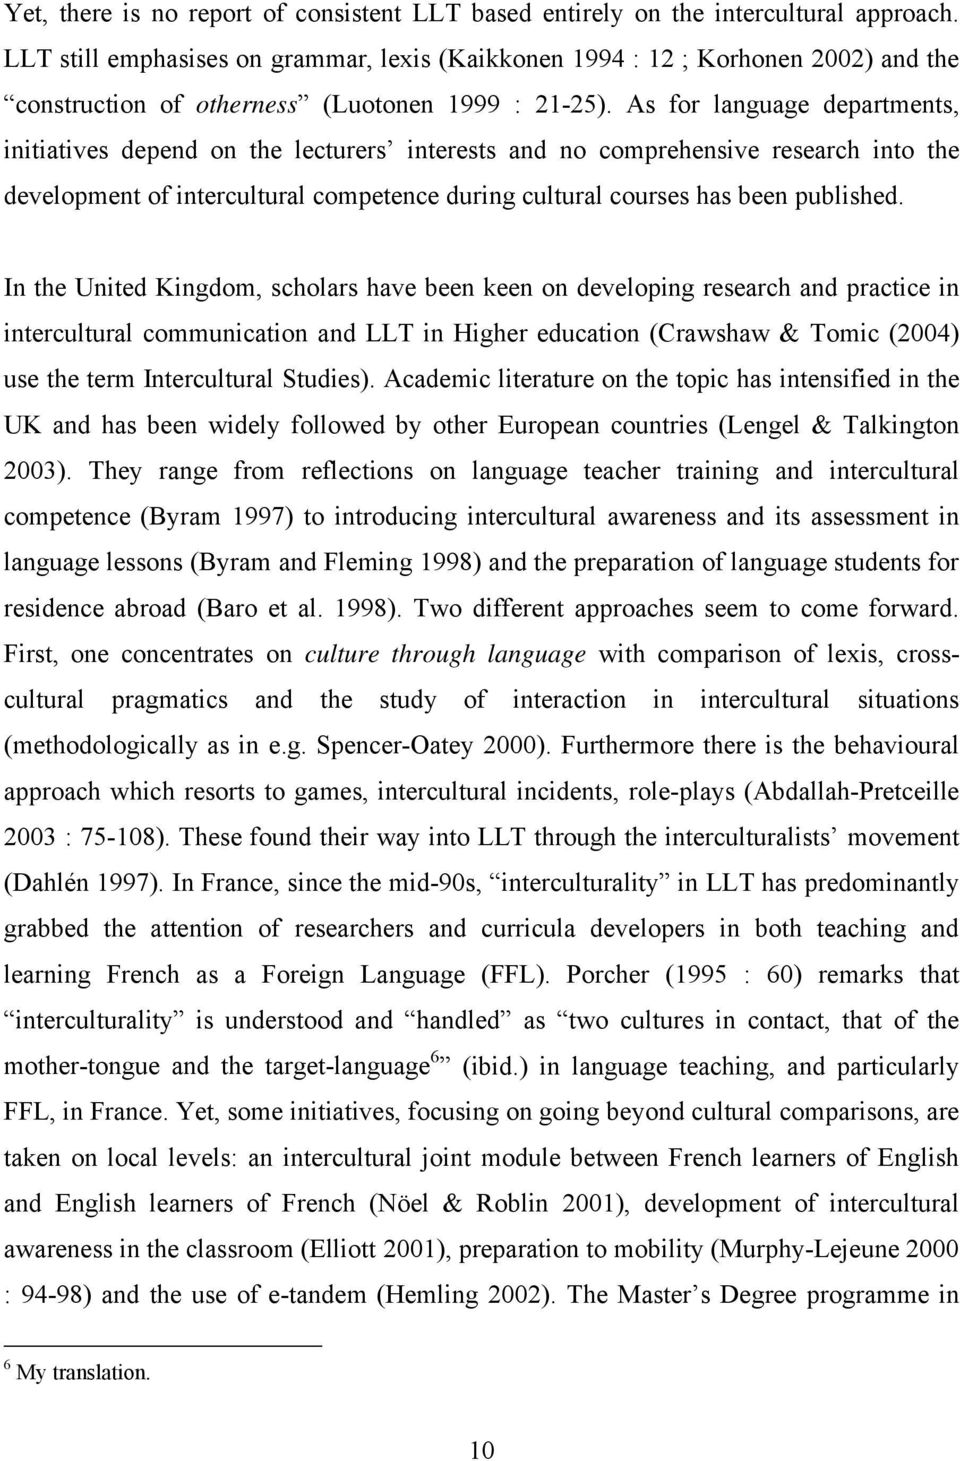 As for language departments, initiatives depend on the lecturers interests and no comprehensive research into the development of intercultural competence during cultural courses has been published.